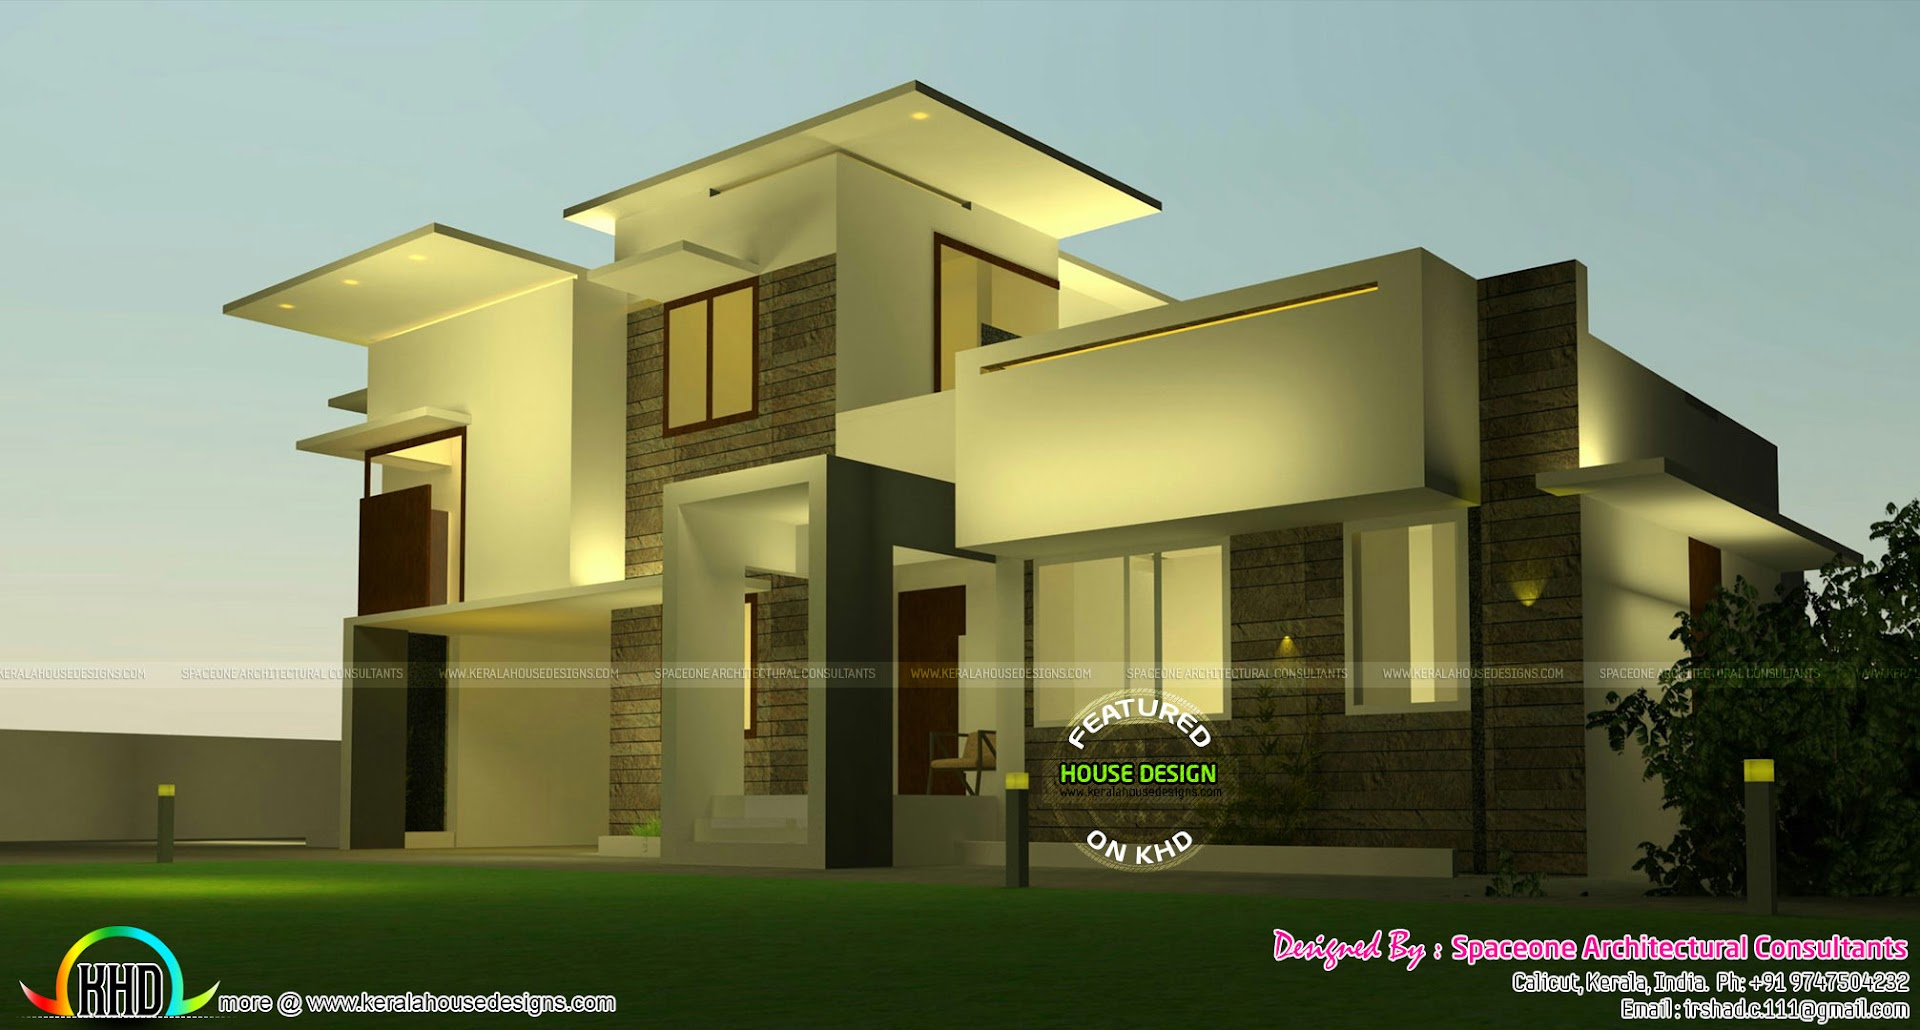 No Of Bedrooms 4 Bathrooms Attached Floors 2 Design Style Modern Box Model